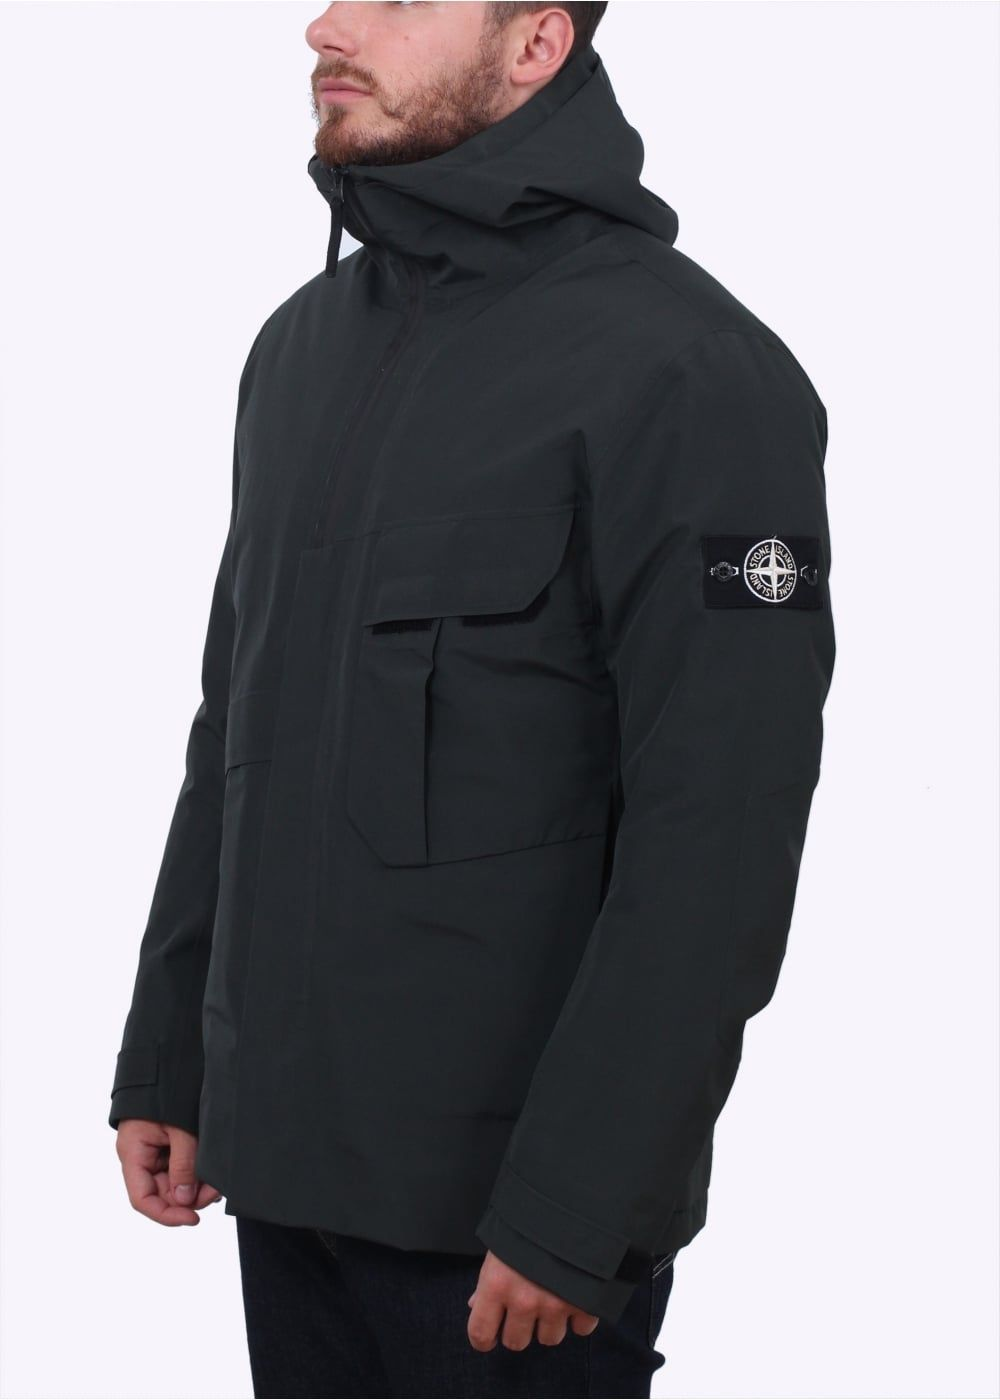 0318b7185b Stone Island Tank Shield Jacket - Petrol - Stone Island from Triads ...